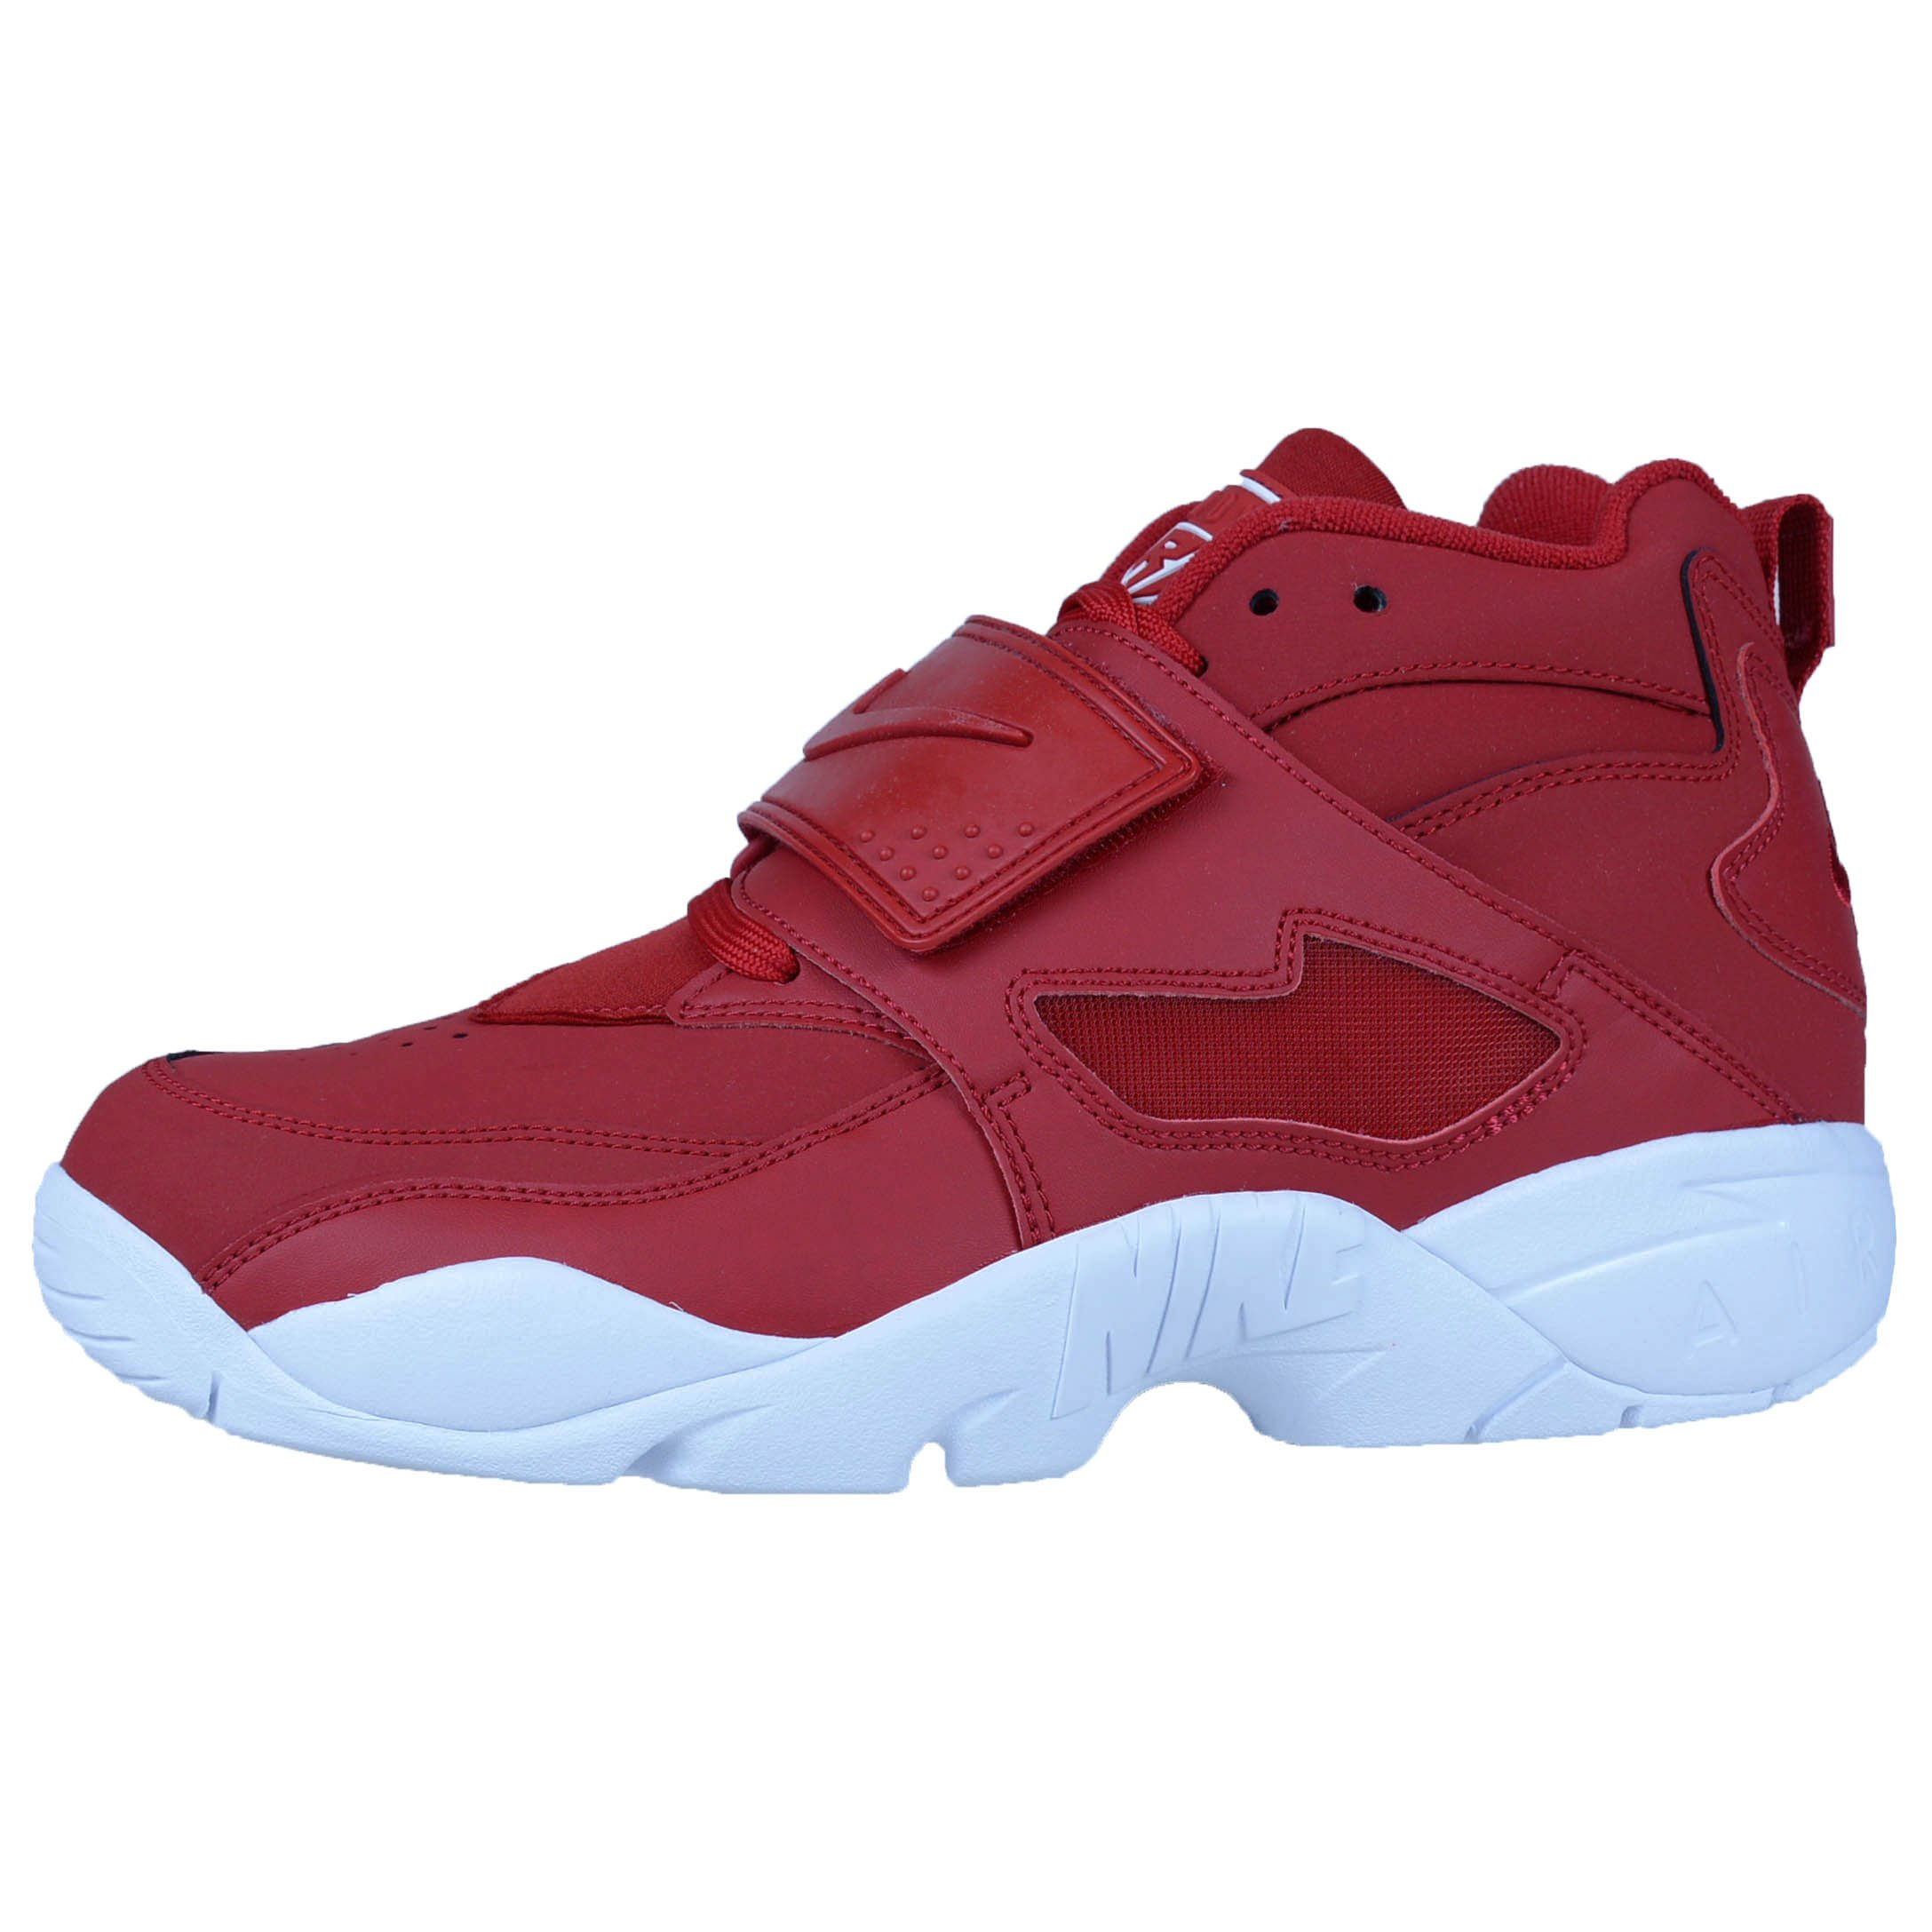 Nike Air Diamond Turf Gym Red/Gym Red-White (12 D(M) US) by Nike (Image #2)